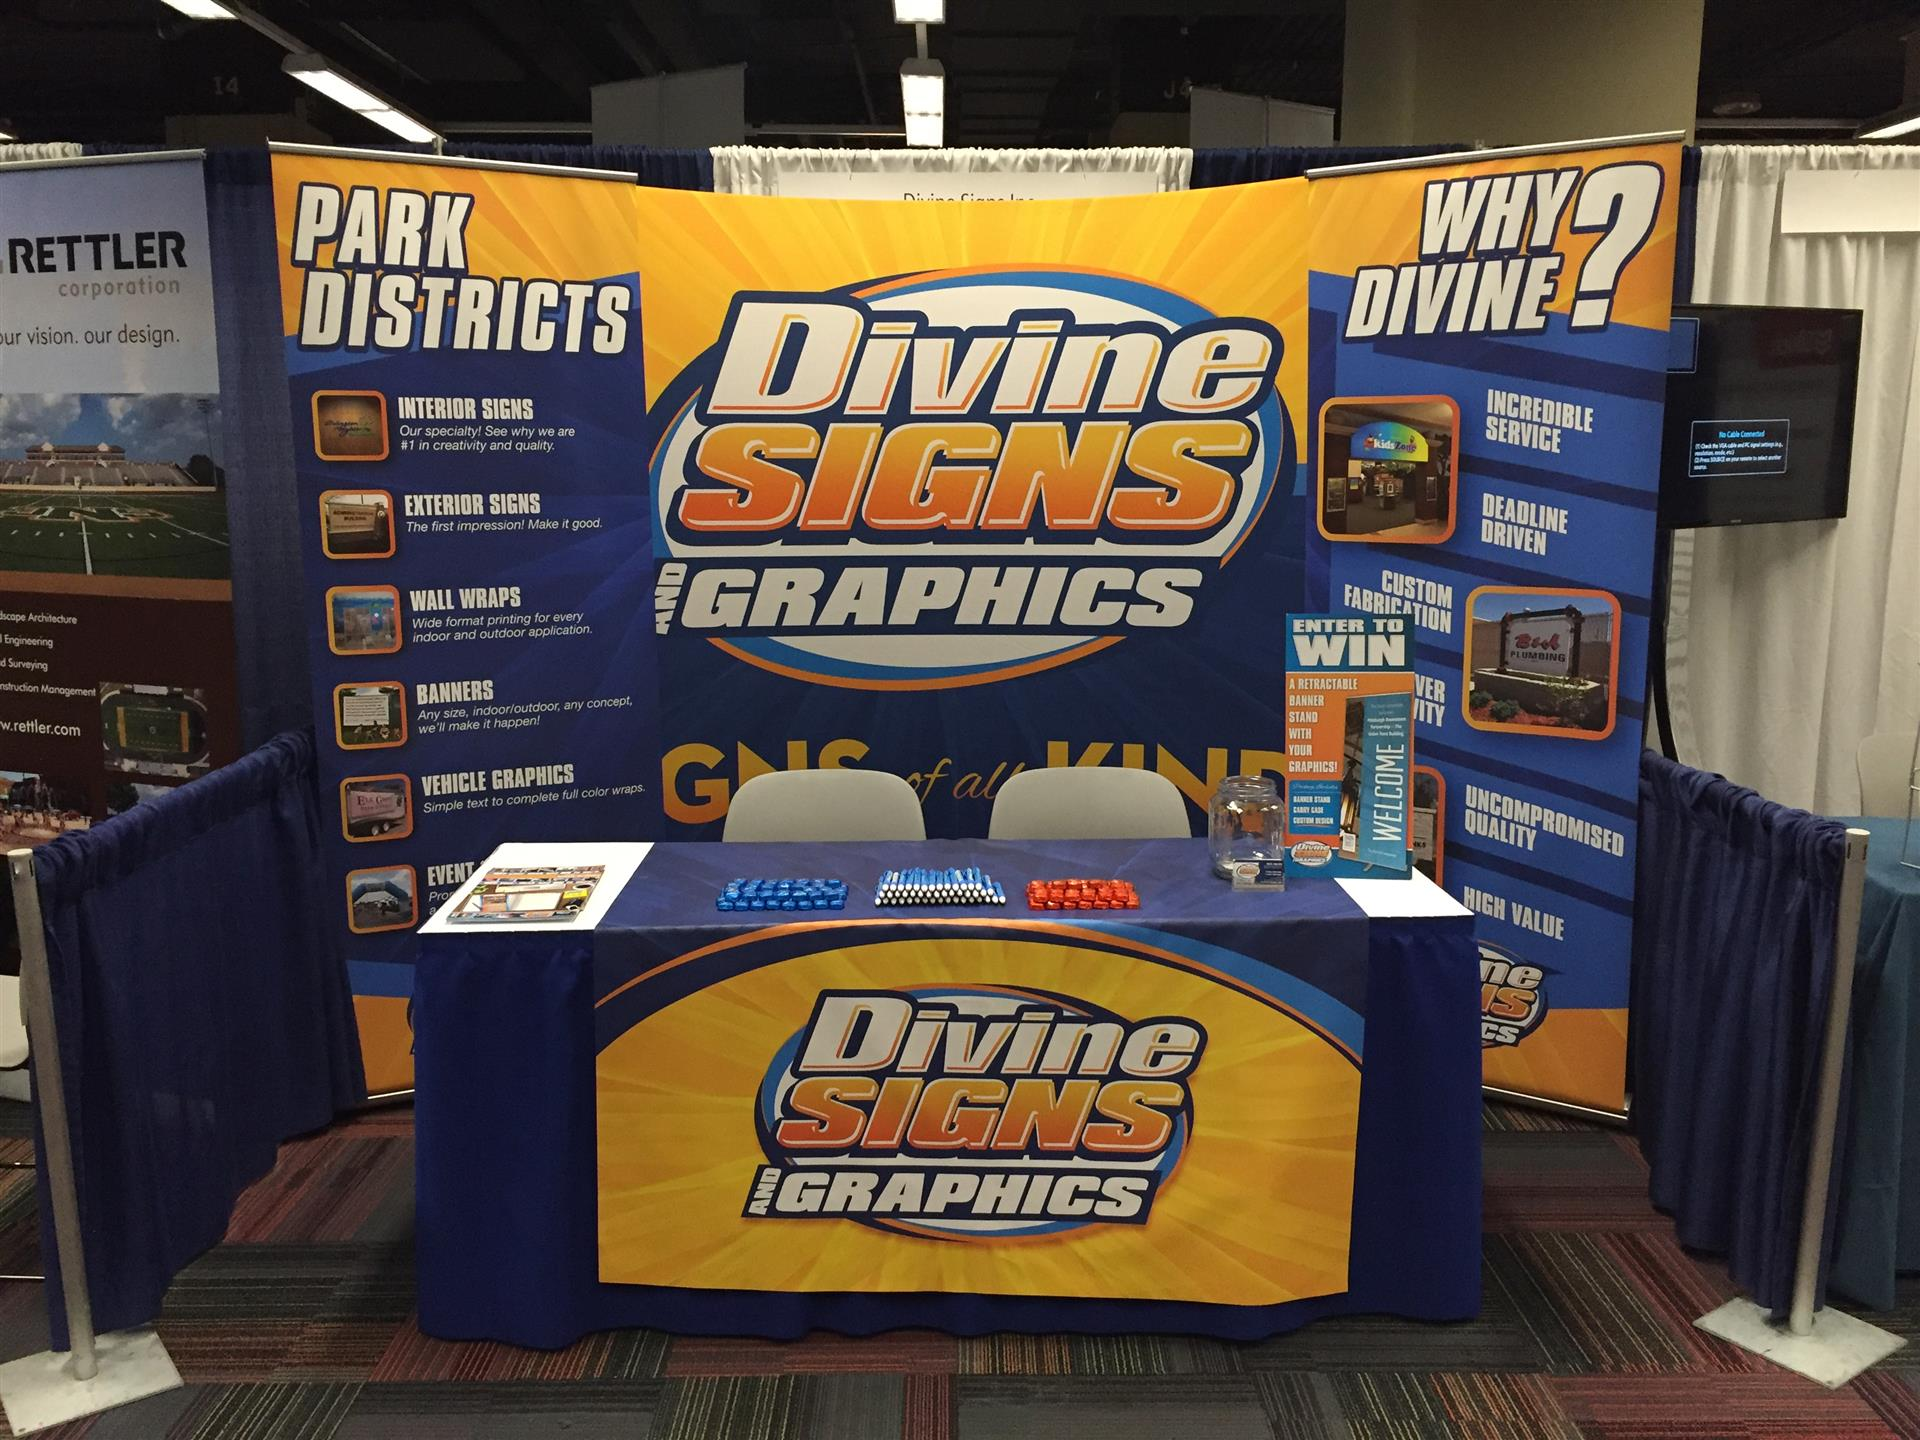 Divine Signs & Graphics Trade Show Display